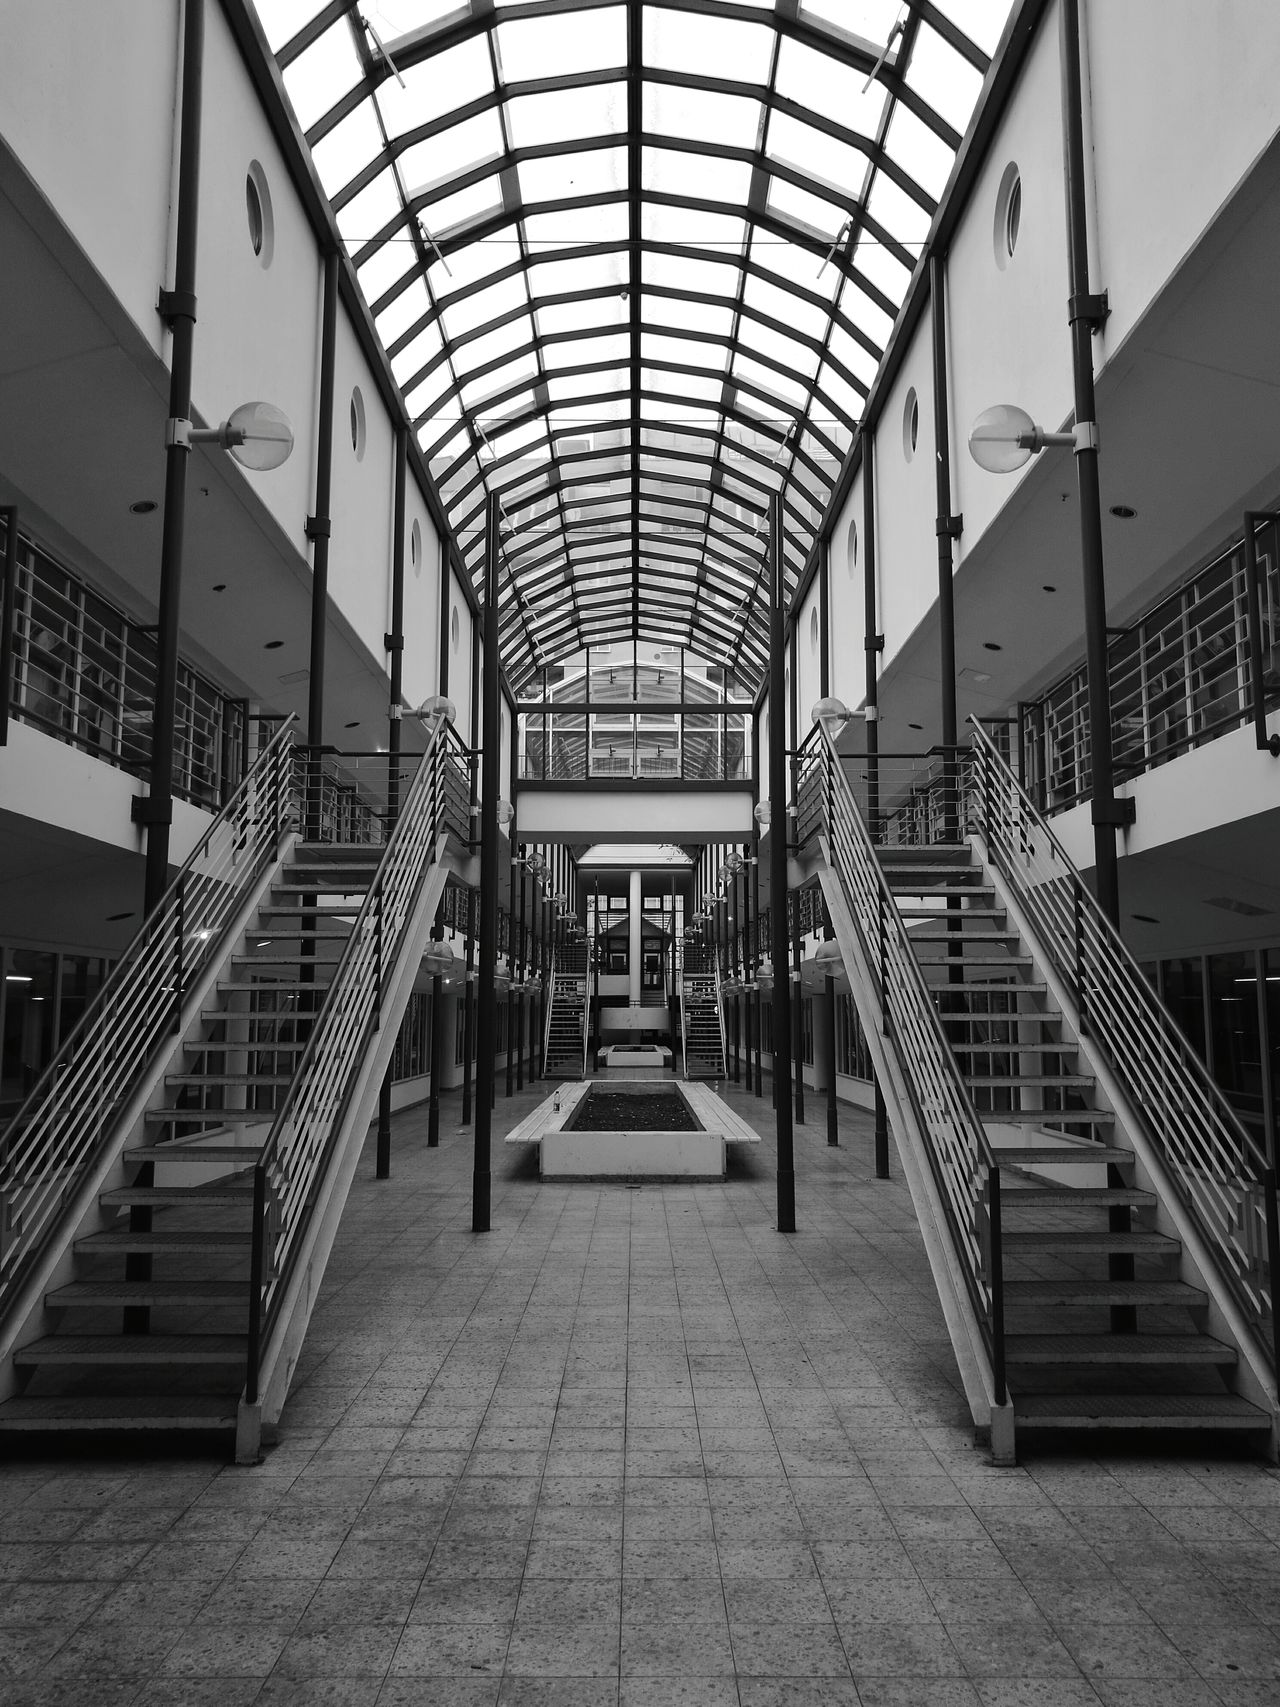 Lost Blackandwhite Stairs Windows Kadewe Parkhaus Shopping Charlottenburg  Berlin Charlottenburg  Light From Above HuaweiP9 Monochrome